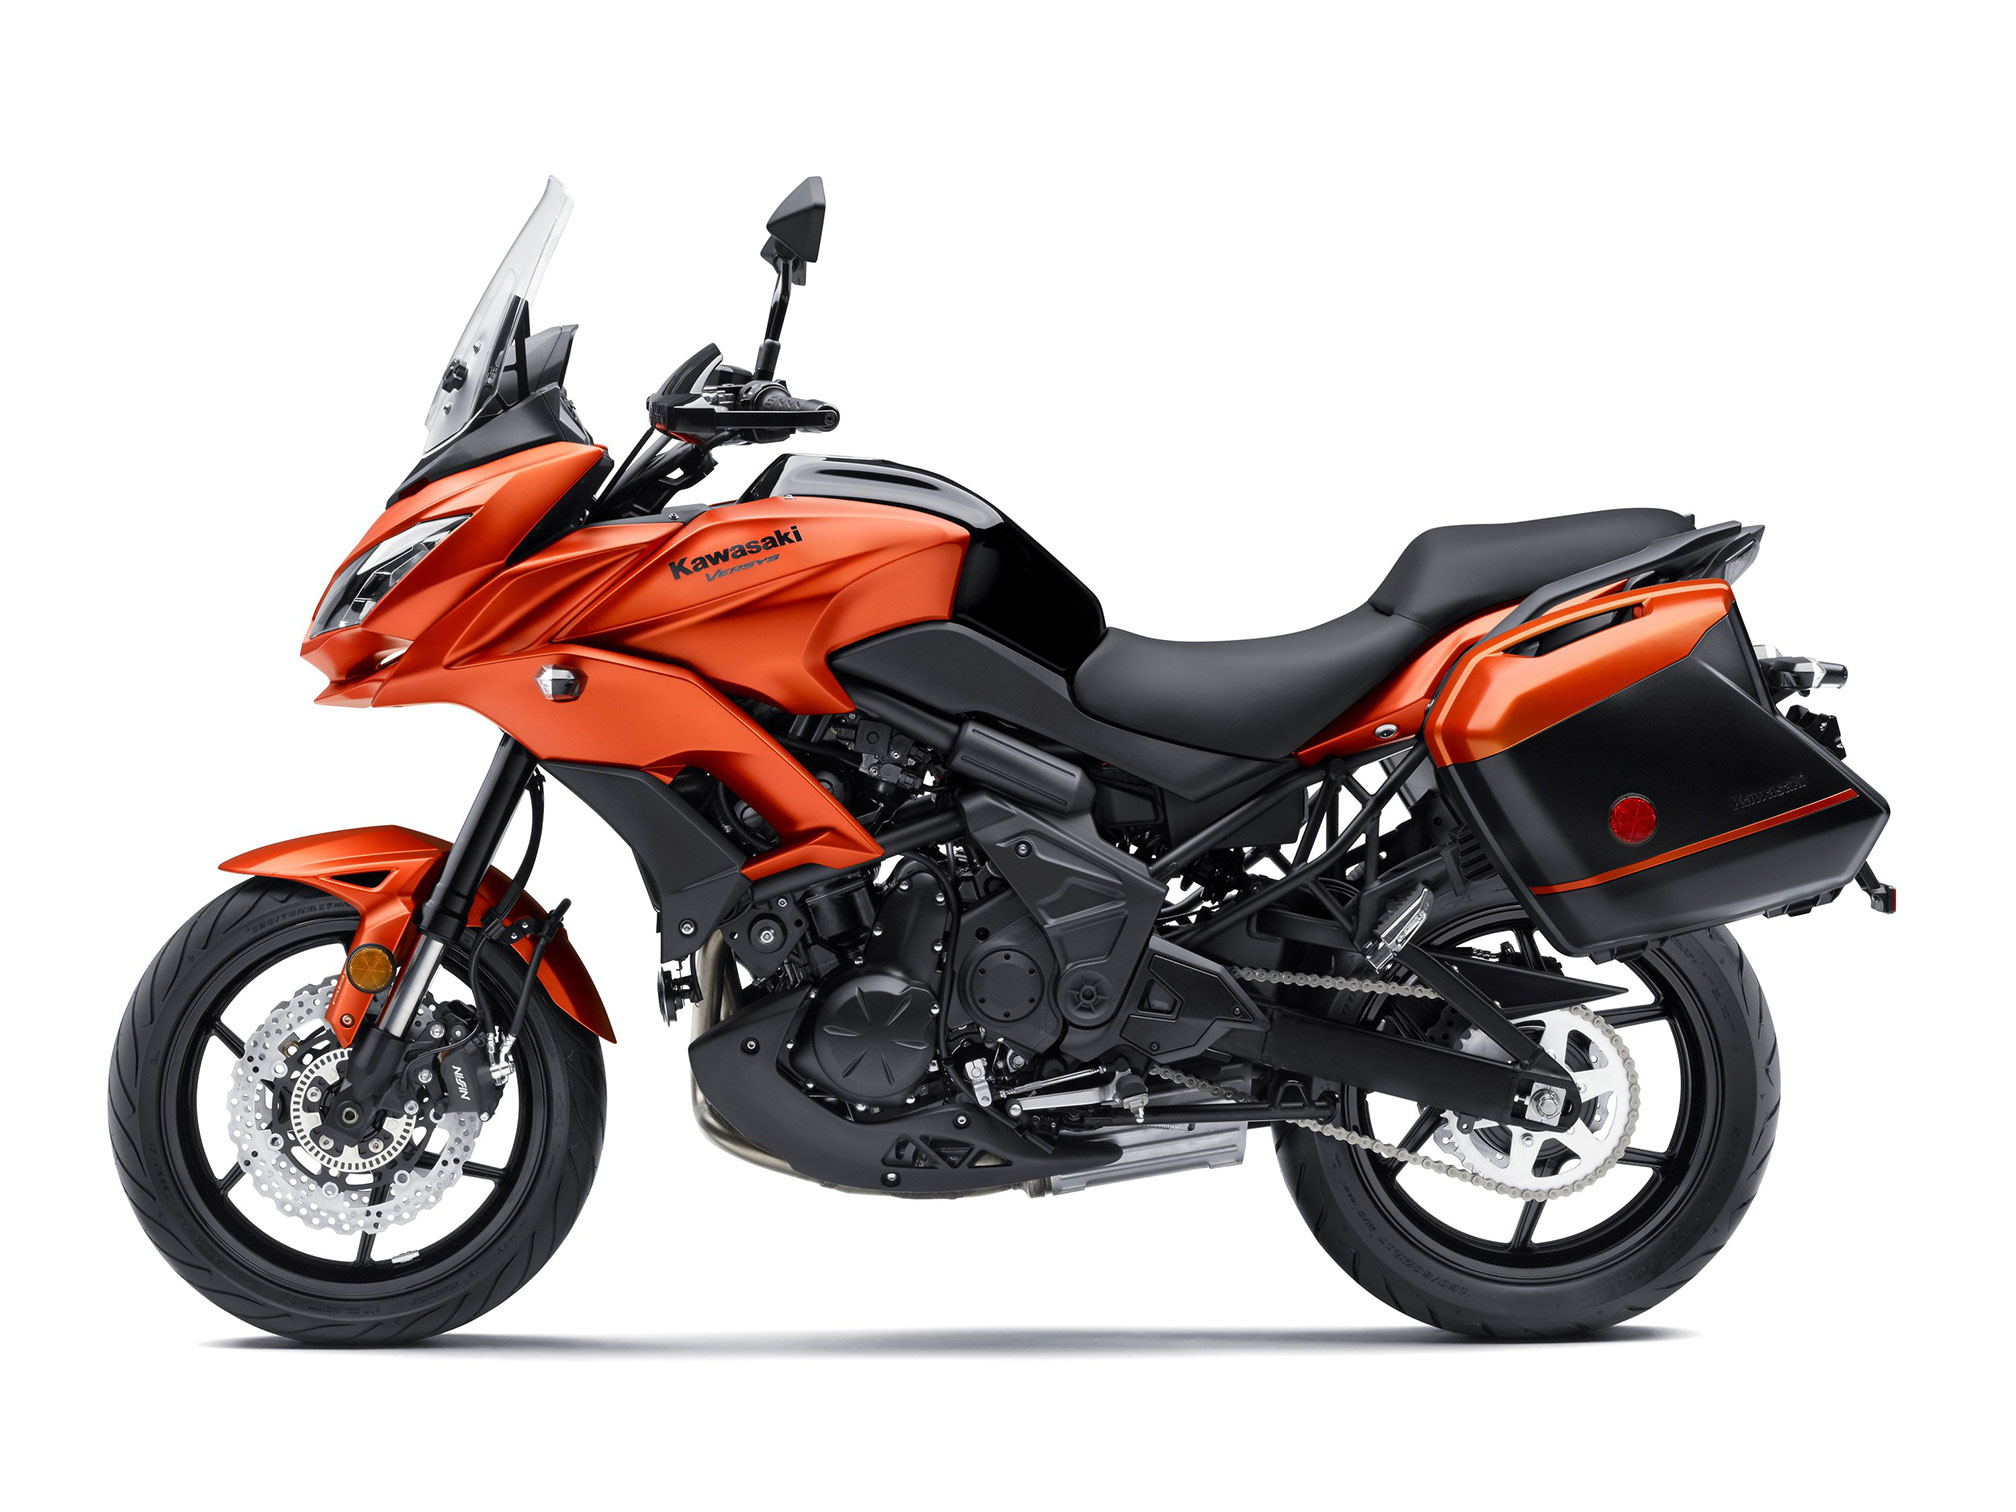 2016 Kawasaki Versys 650lt Review